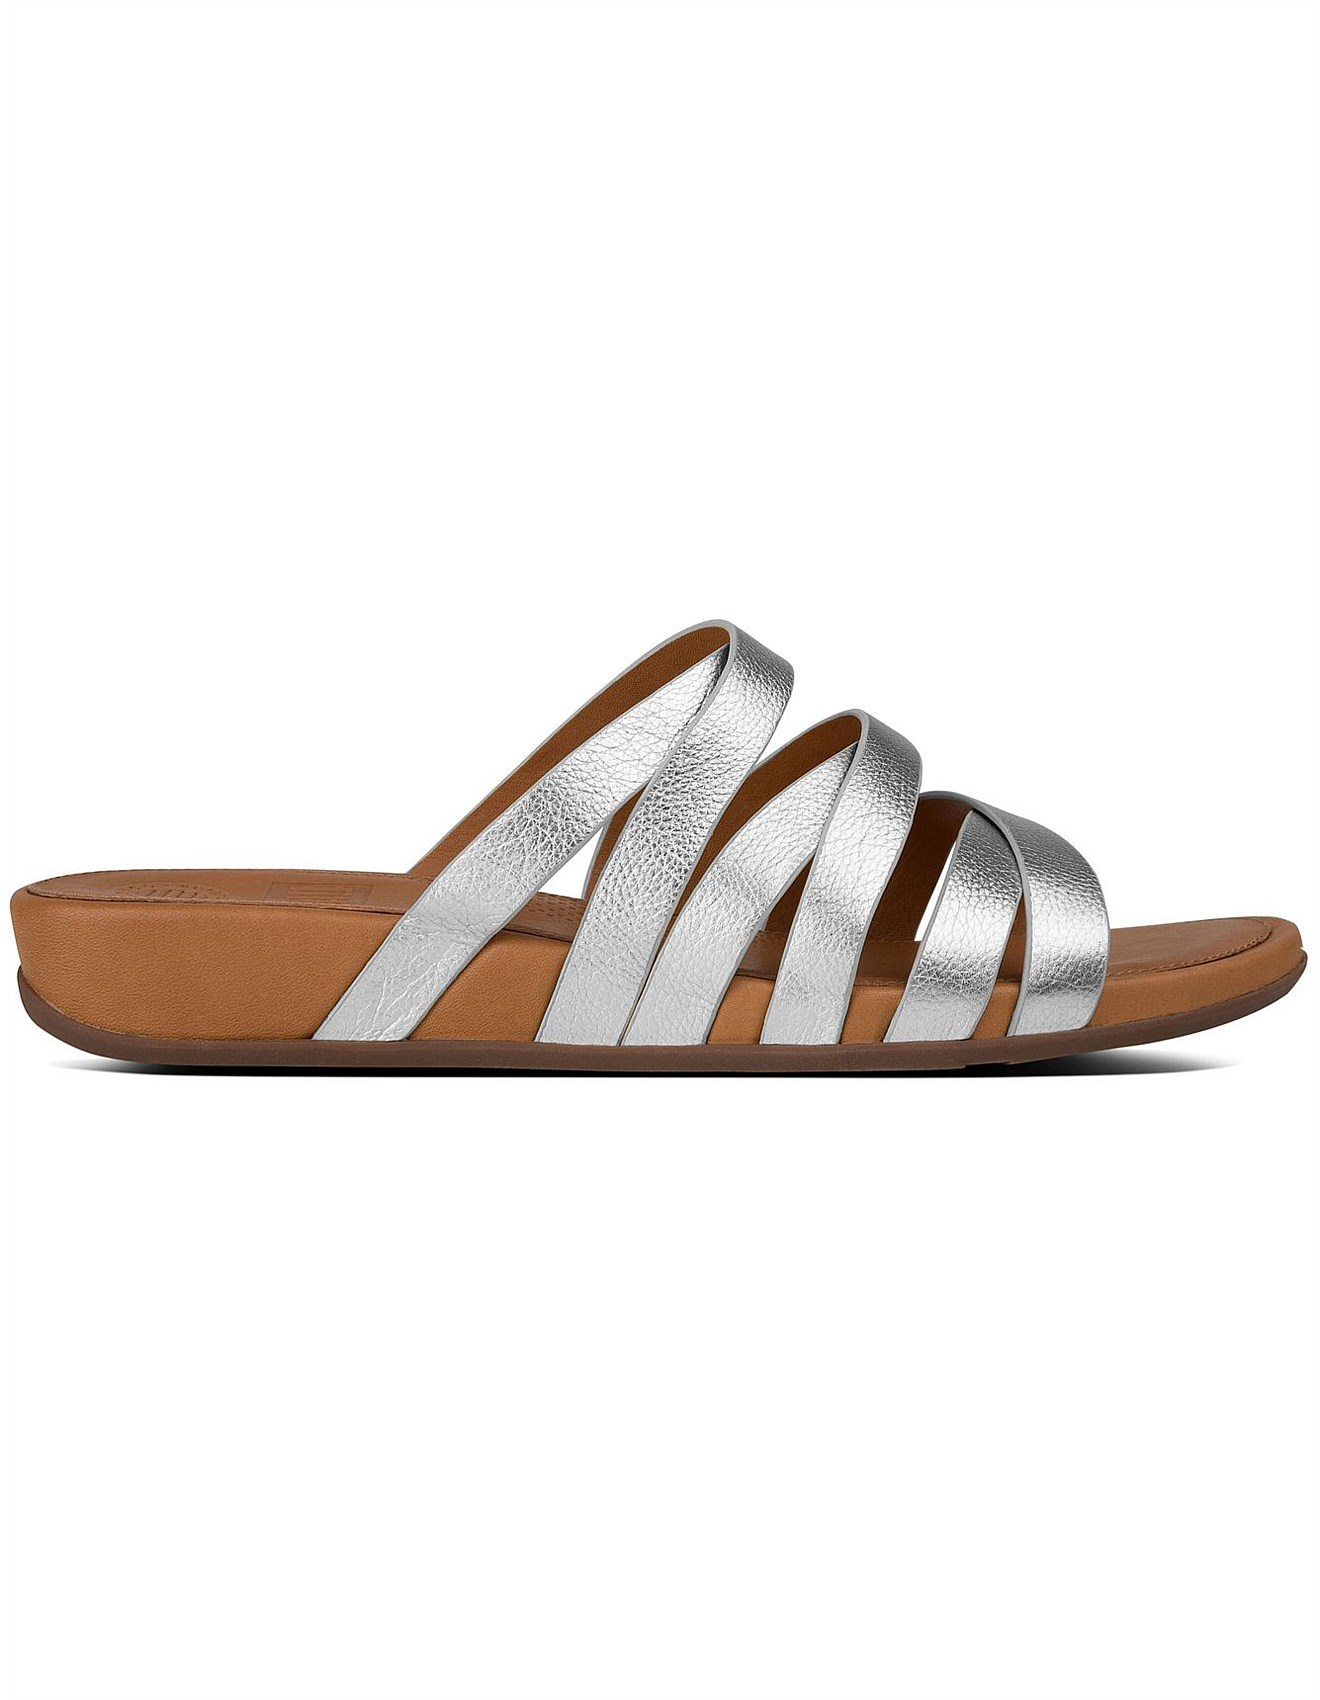 072a504ad Lumy Leather Slide Silver